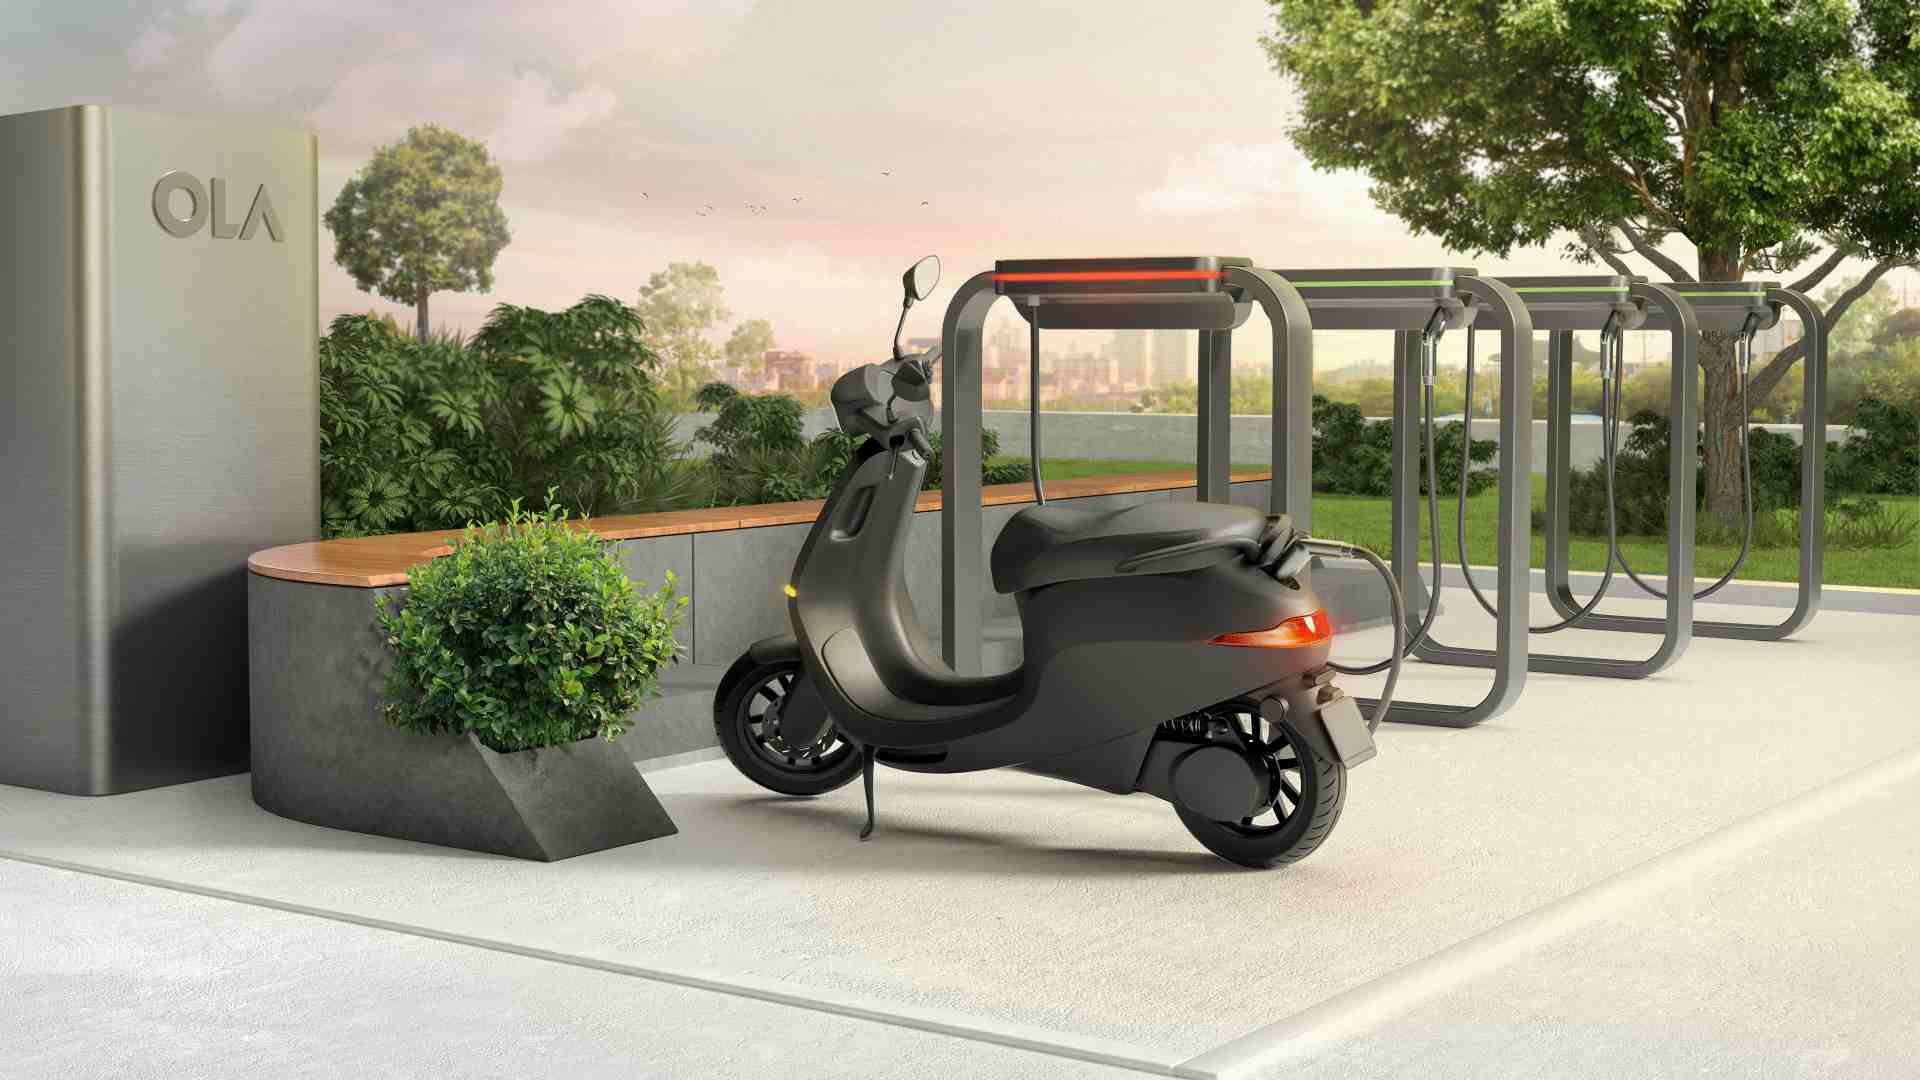 Ola Electric reveals details of its Hypercharger network ahead of e-scooter launch- Technology News, Gadgetclock